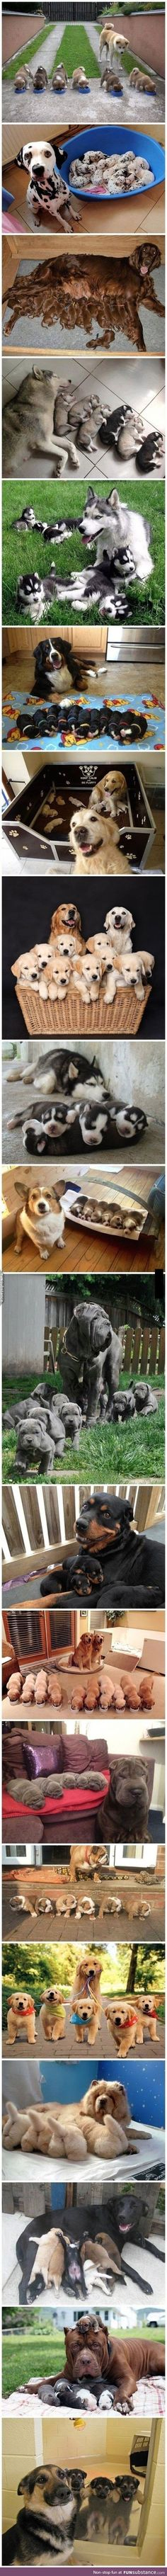 Doggos and their puppers